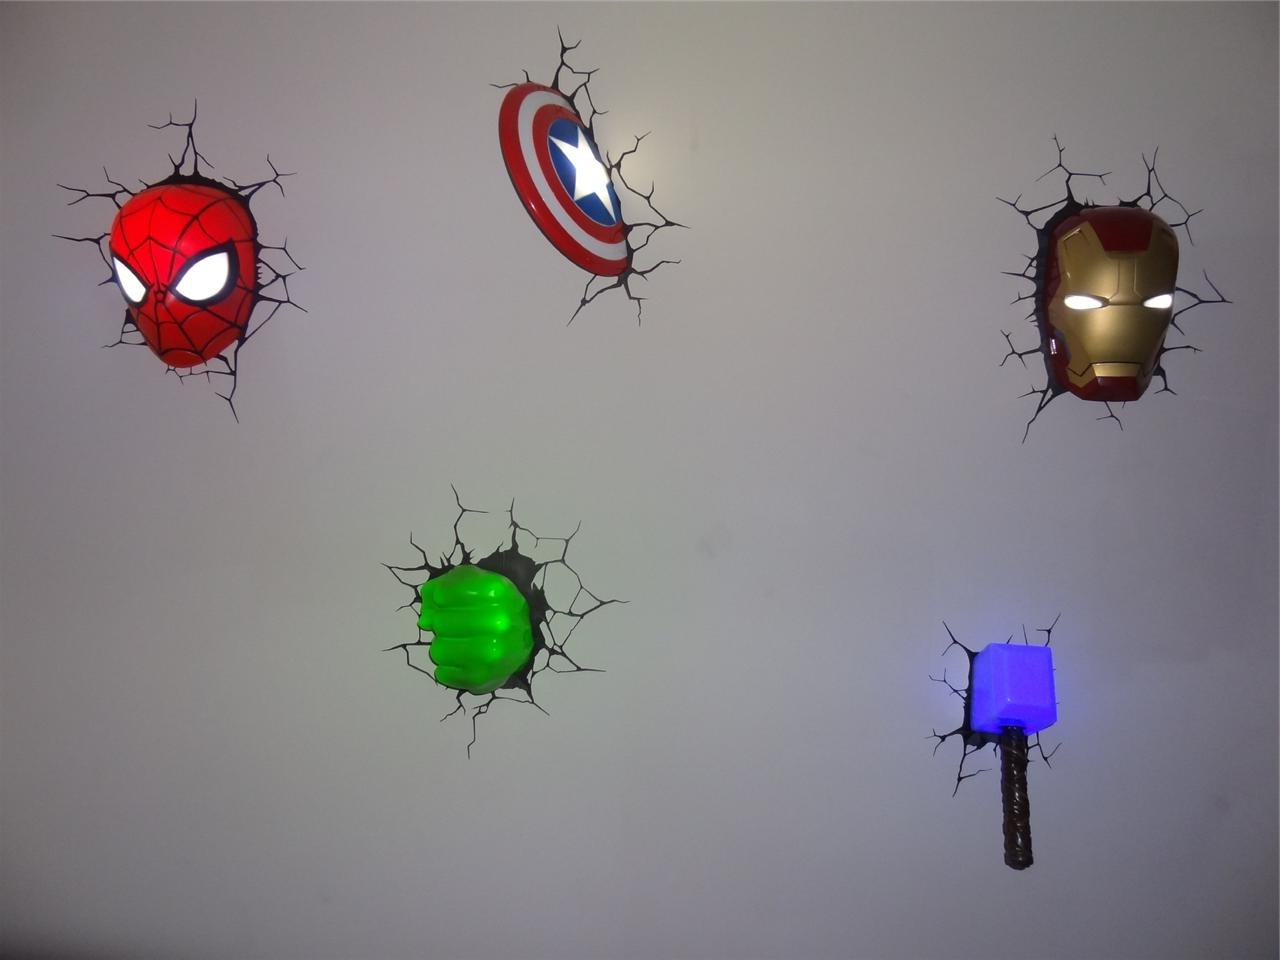 3d Wall Art Night Light 2019 Best Of The Avengers 3d Wall Art Nightlight